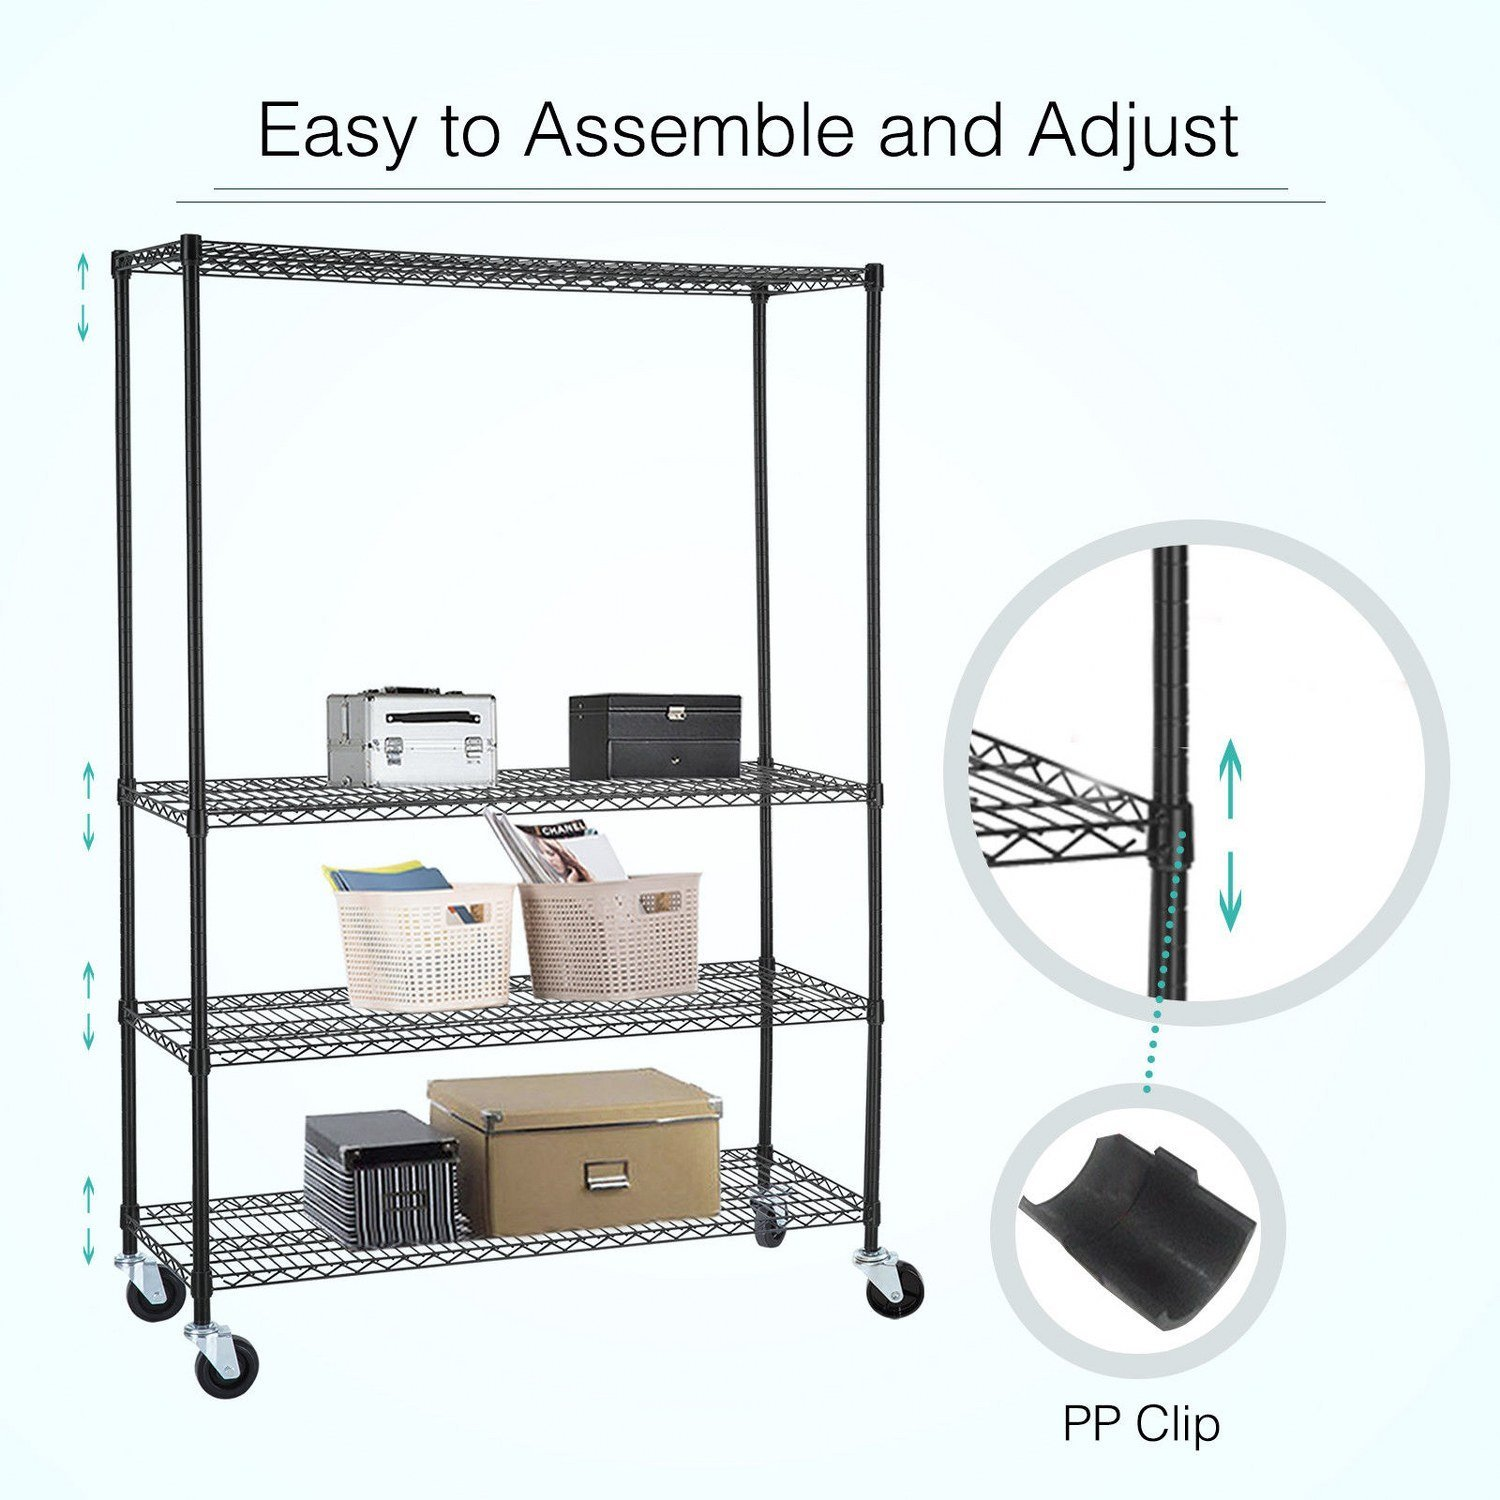 Adjustable Heavy Duty 4 Tier Shelving Rack Weight Capacity 200 Lbs. Steel Wire Metal Shelf New by Okapi (Image #5)